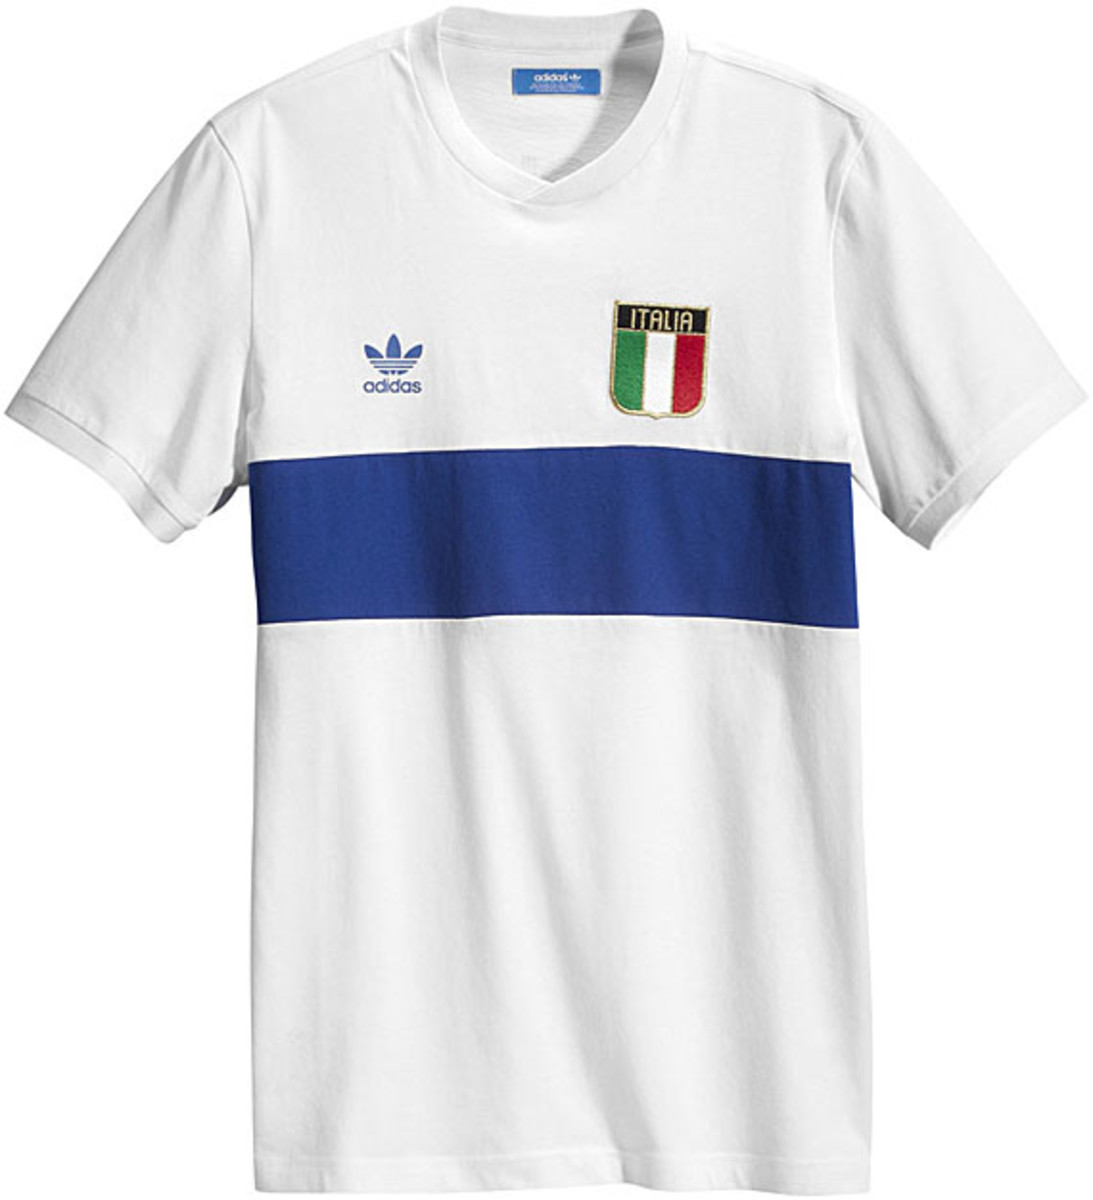 adidas-originals-euro-cup-2012-inspired-fan-gear-07